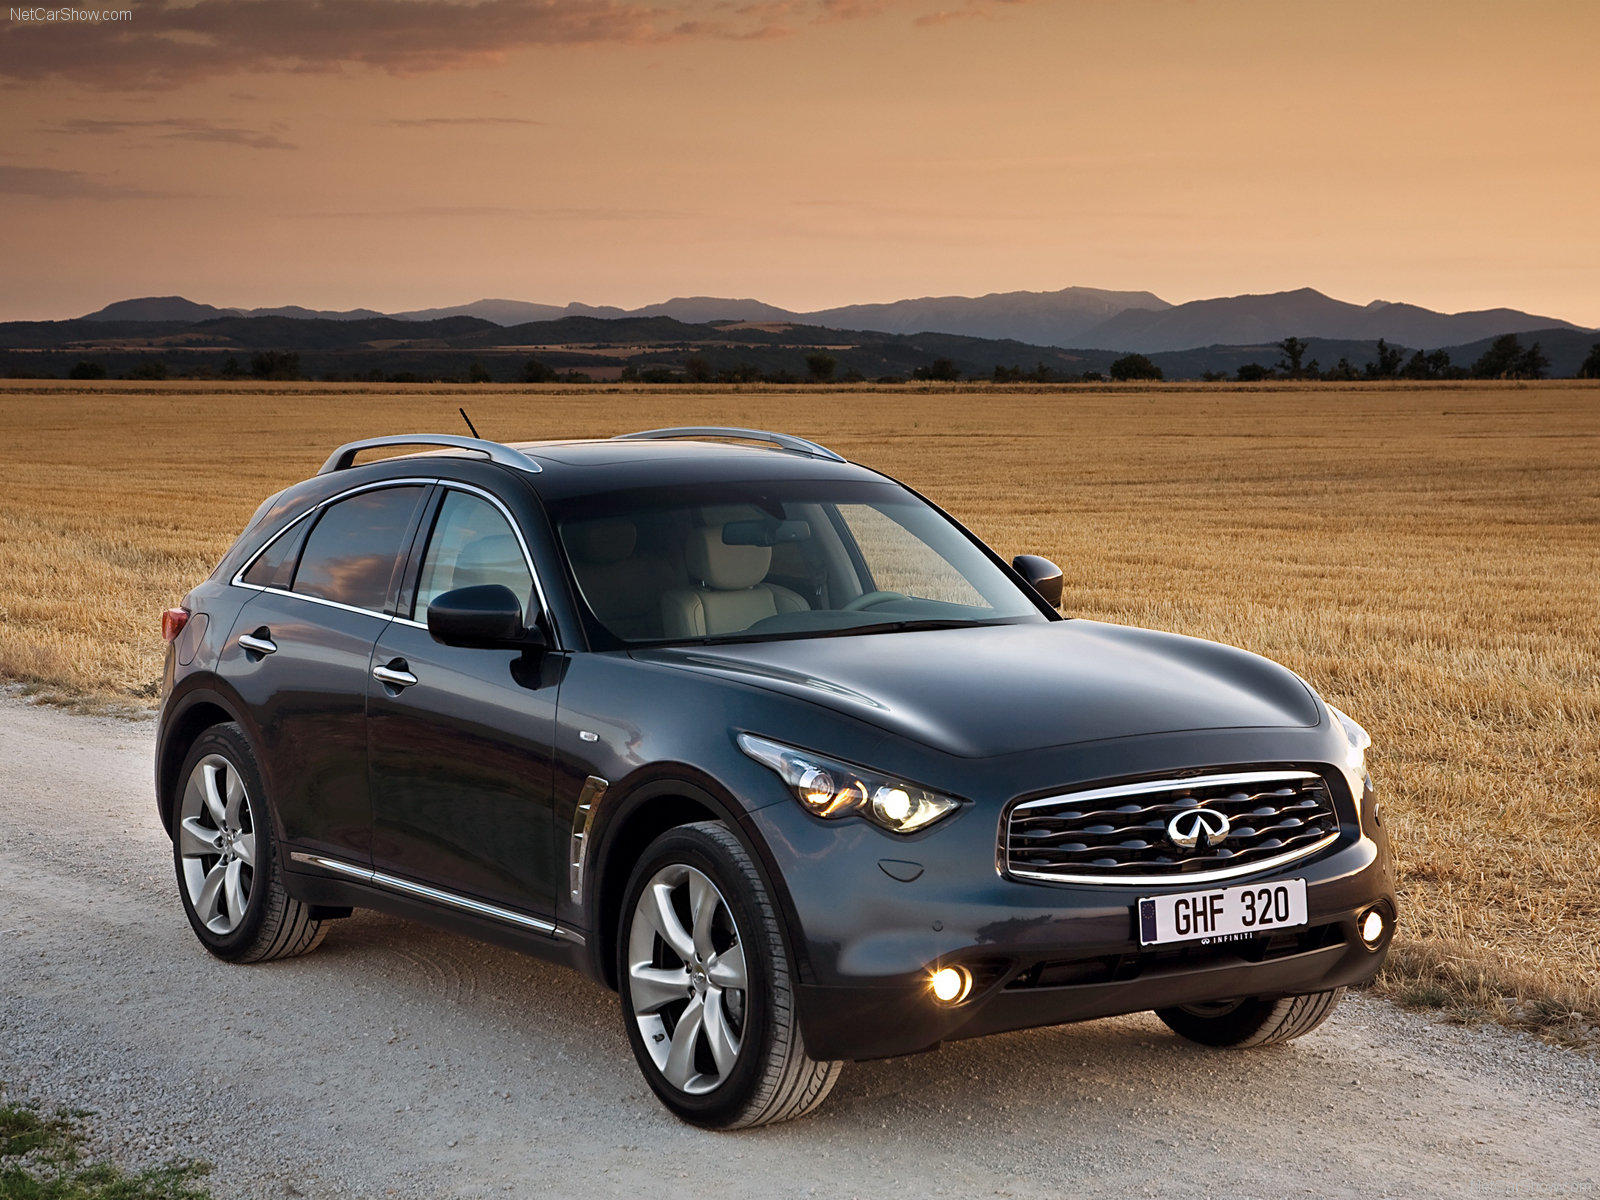 Infiniti fx car technical data car specifications vehicle fuel infiniti fx37 vanachro Gallery